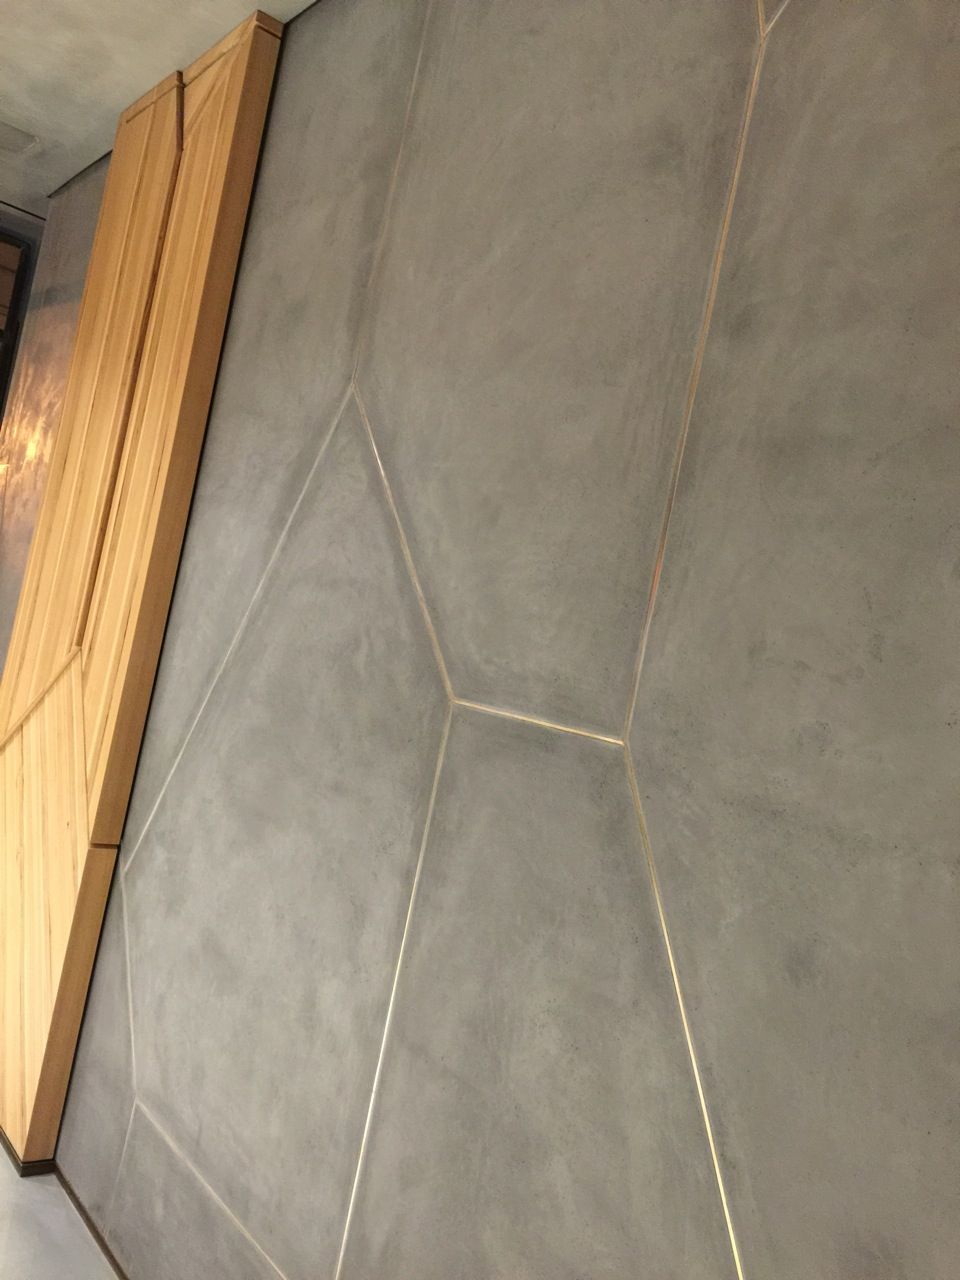 Troweled Concrete Wall Finish Concrete Tile Floor Concrete Wall Inlay Flooring